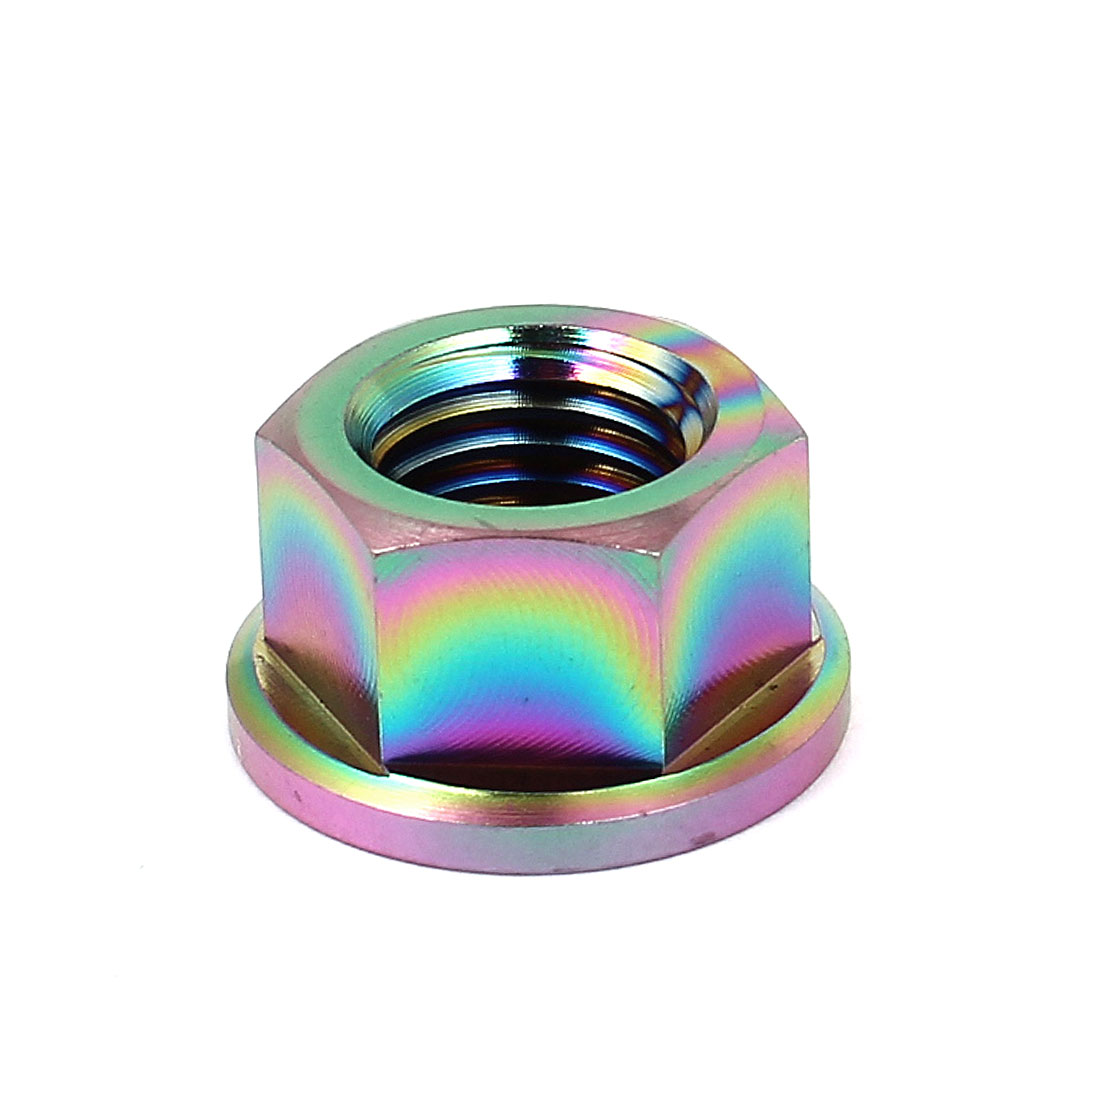 DIN 6923 Metric M10x1.25mm Colorful TC4 Titanium Hex Head Flange Nut 10mm High